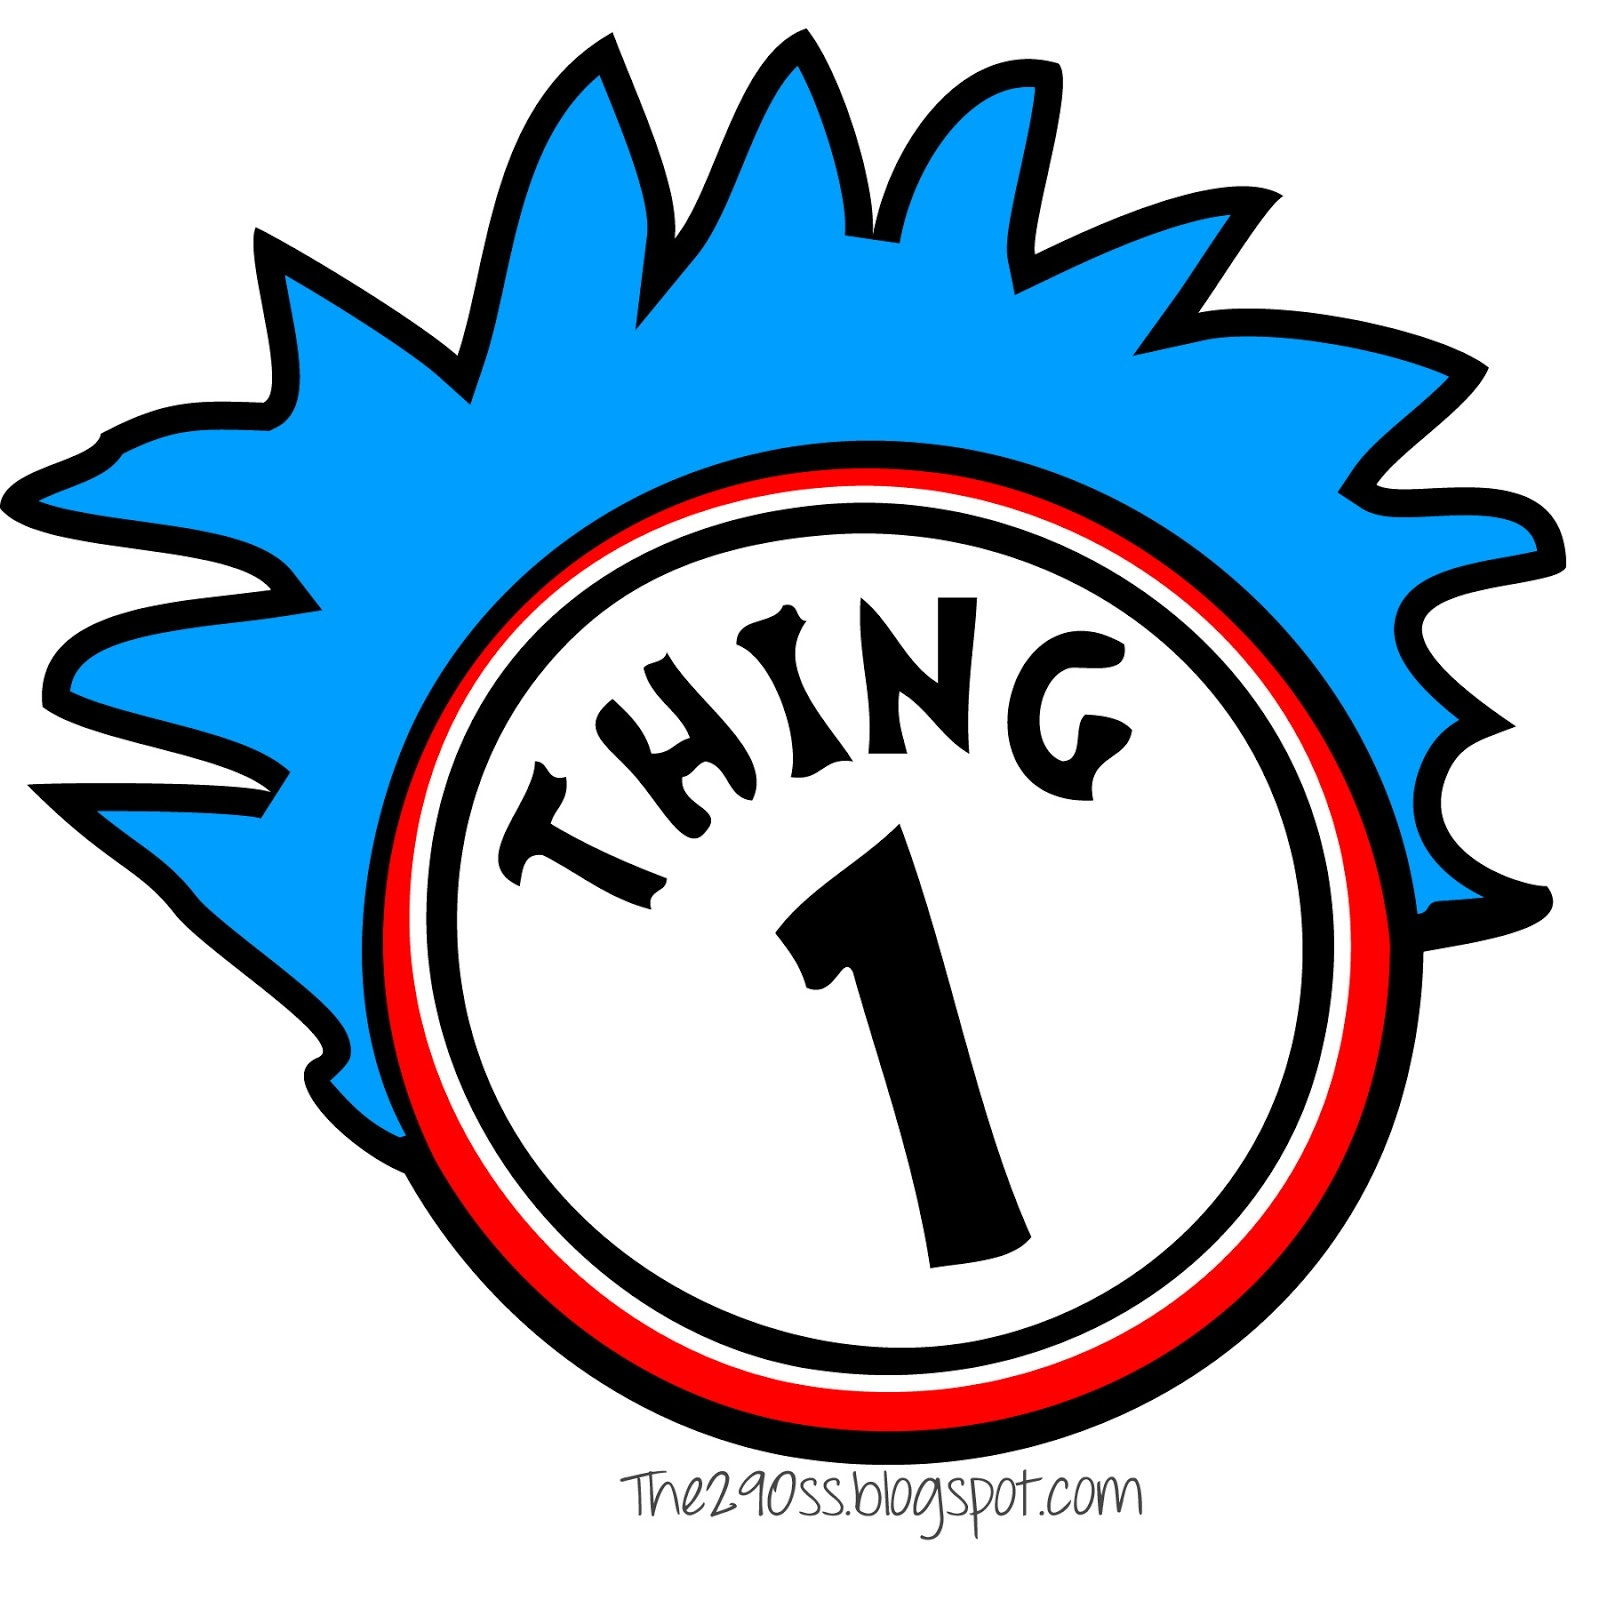 Thing 1 And Thing 2 Clipart | Free Download Best Thing 1 And Thing 2 - Thing 1 And Thing 2 Free Printable Template